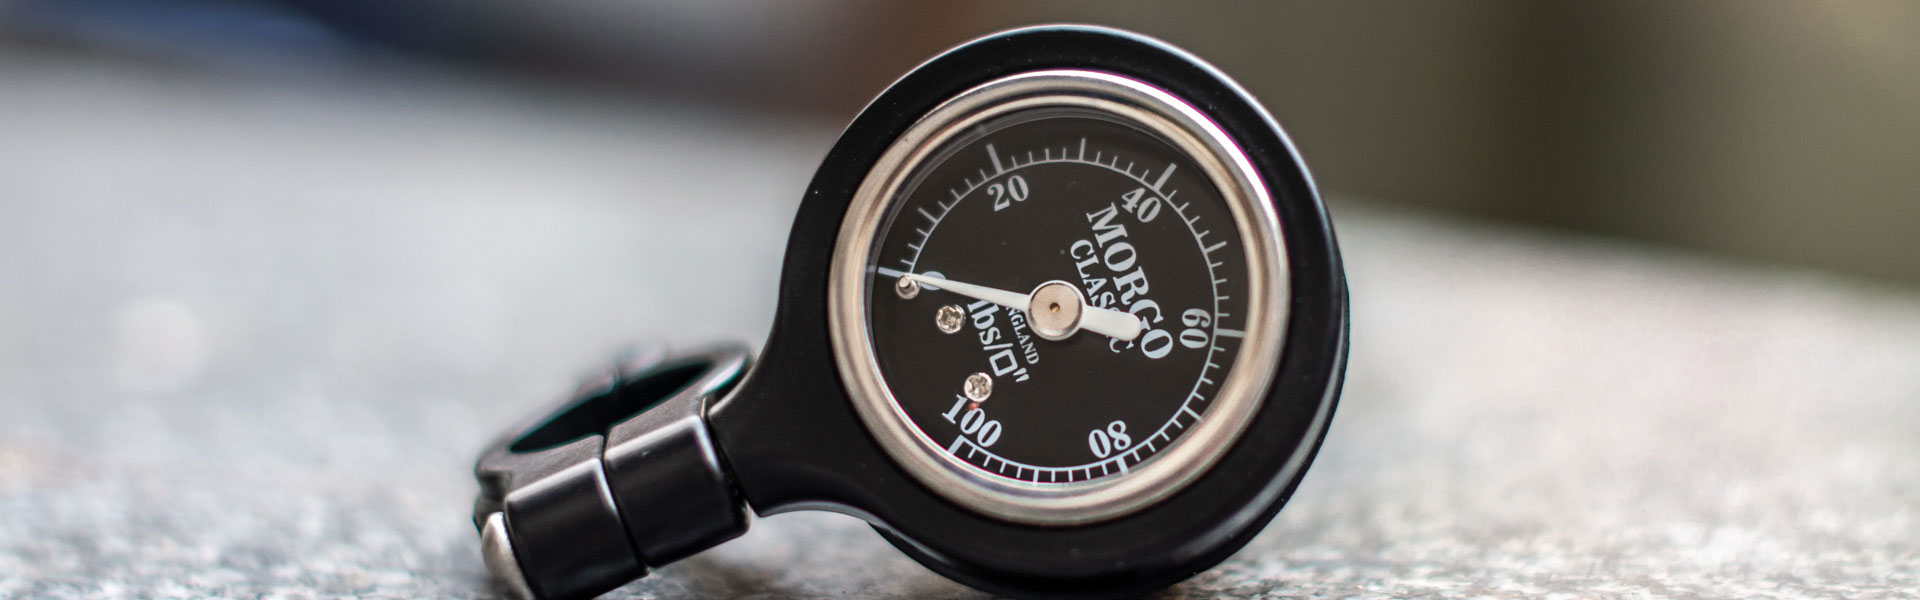 Morgo Oil Pressure Gauge Triumph Products